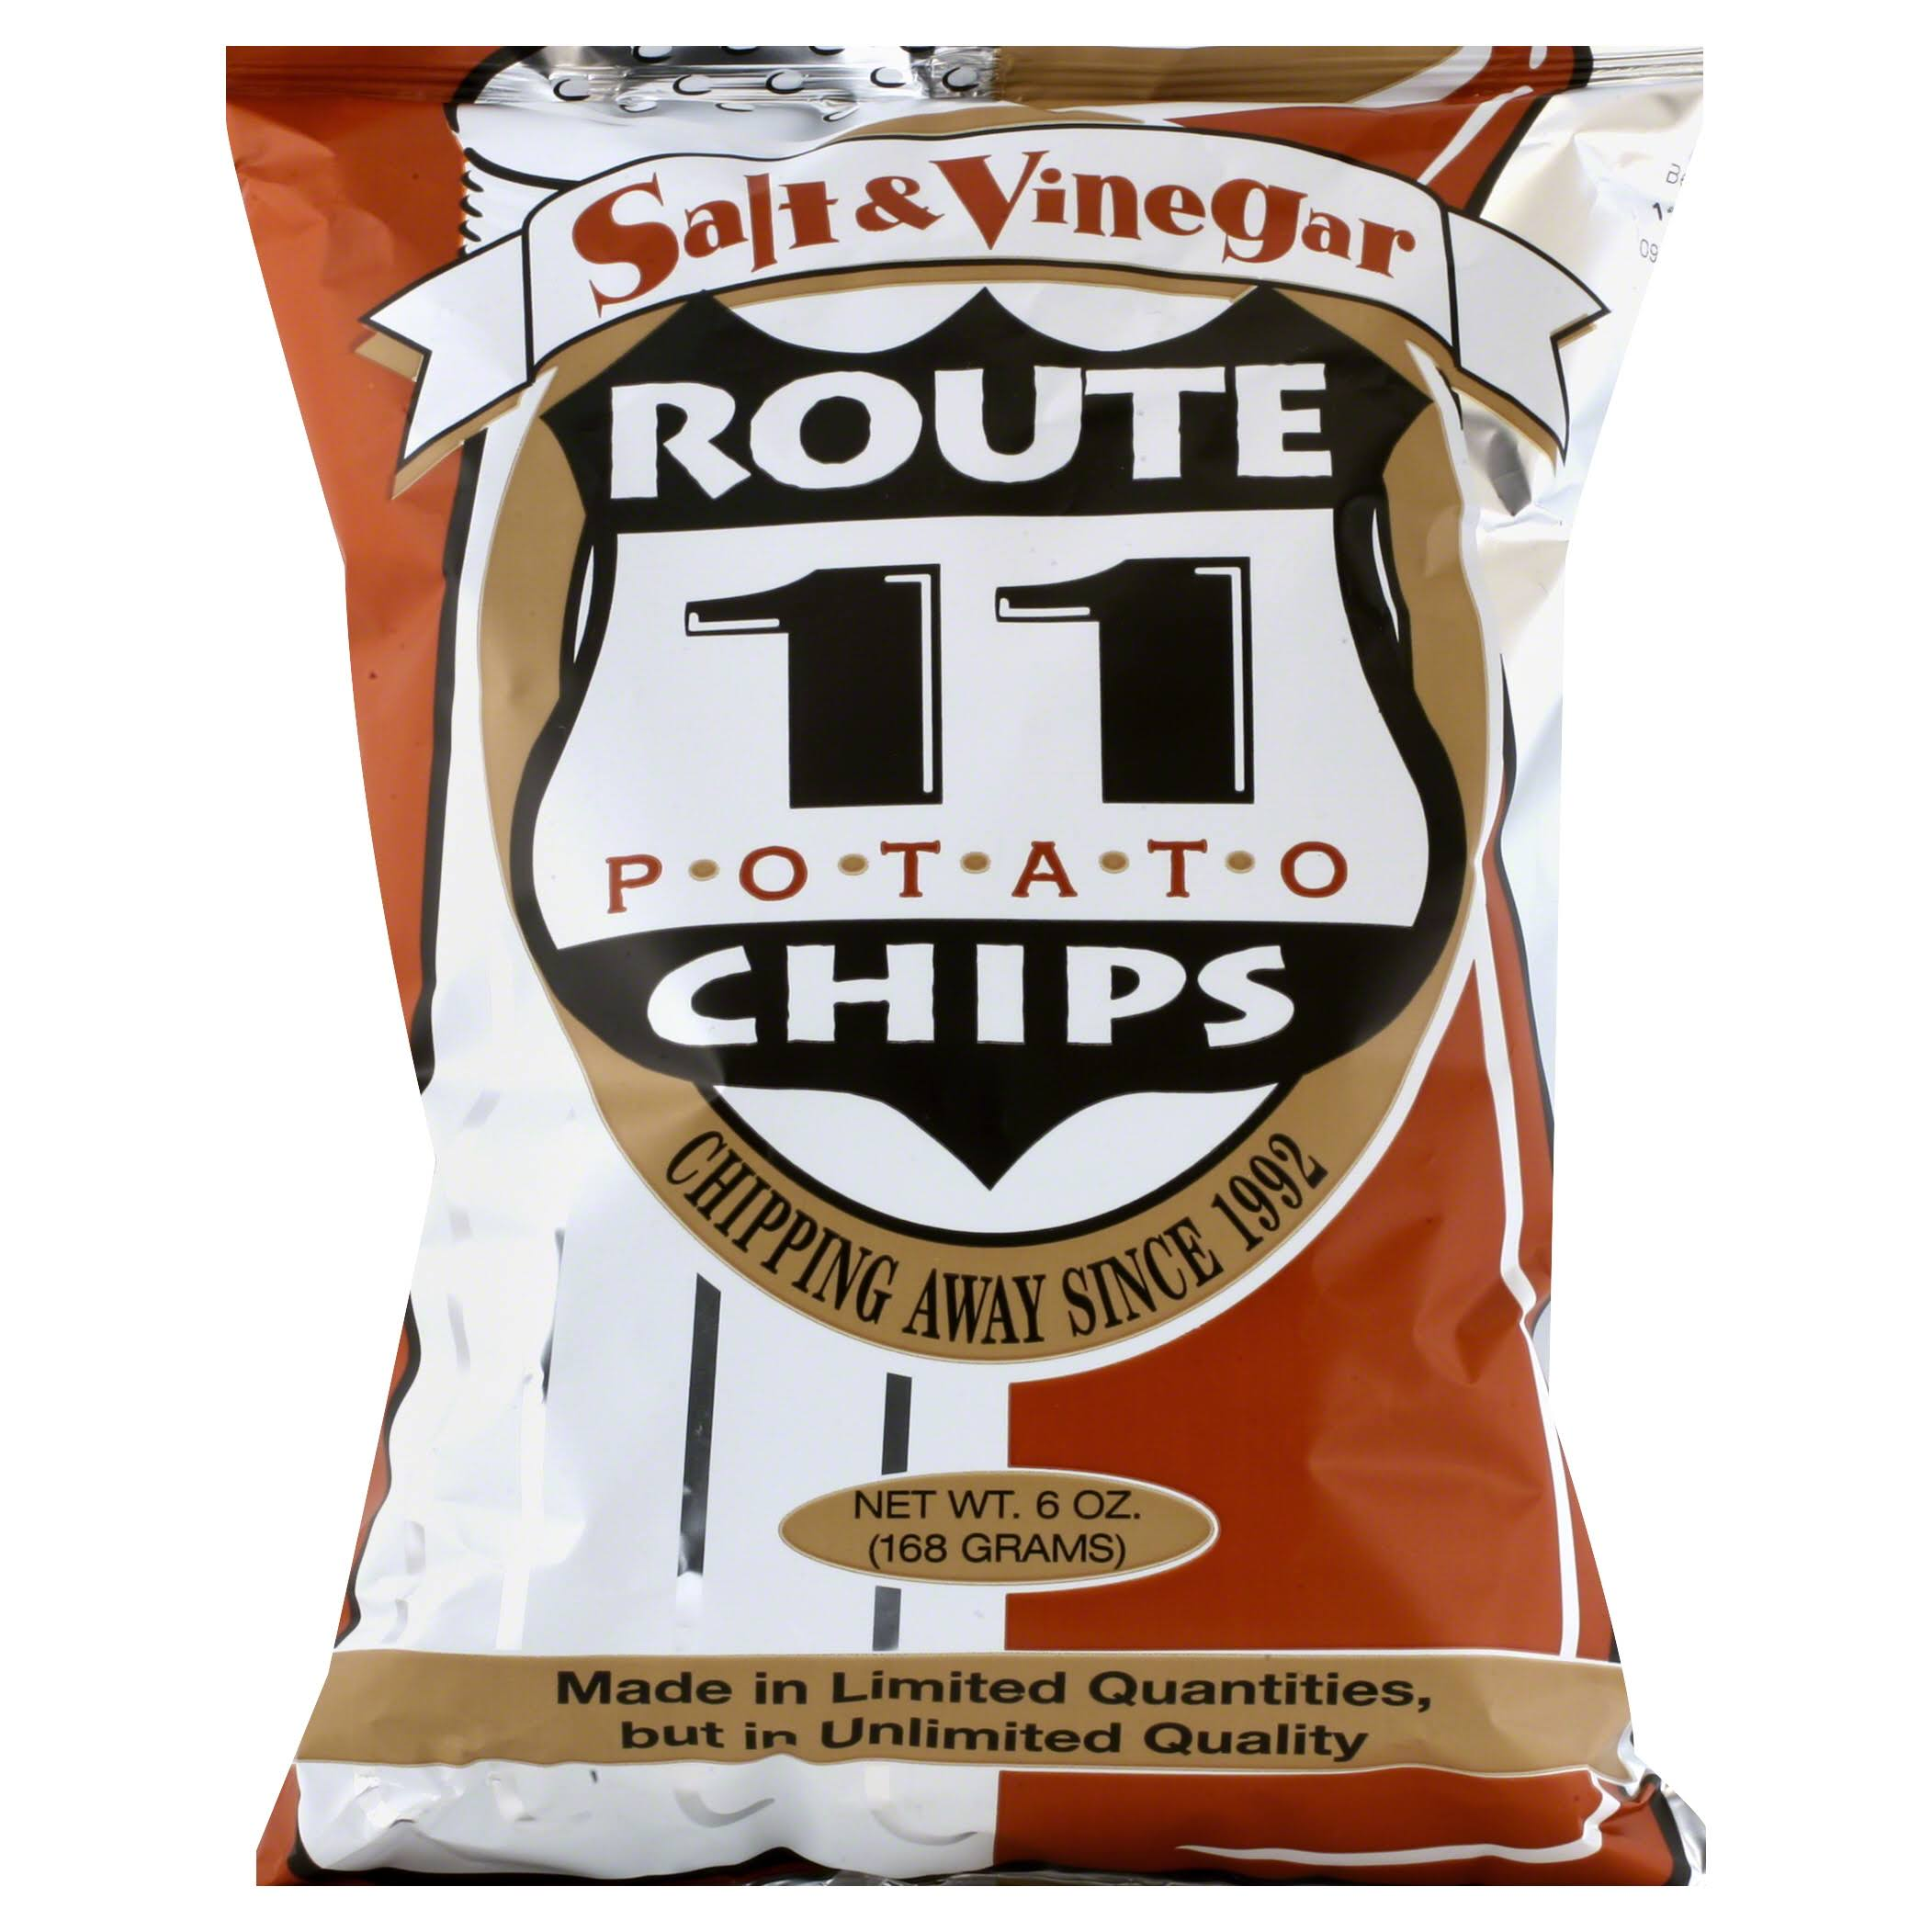 Route 11 Potato Chips, Salt & Vinegar - 6 oz